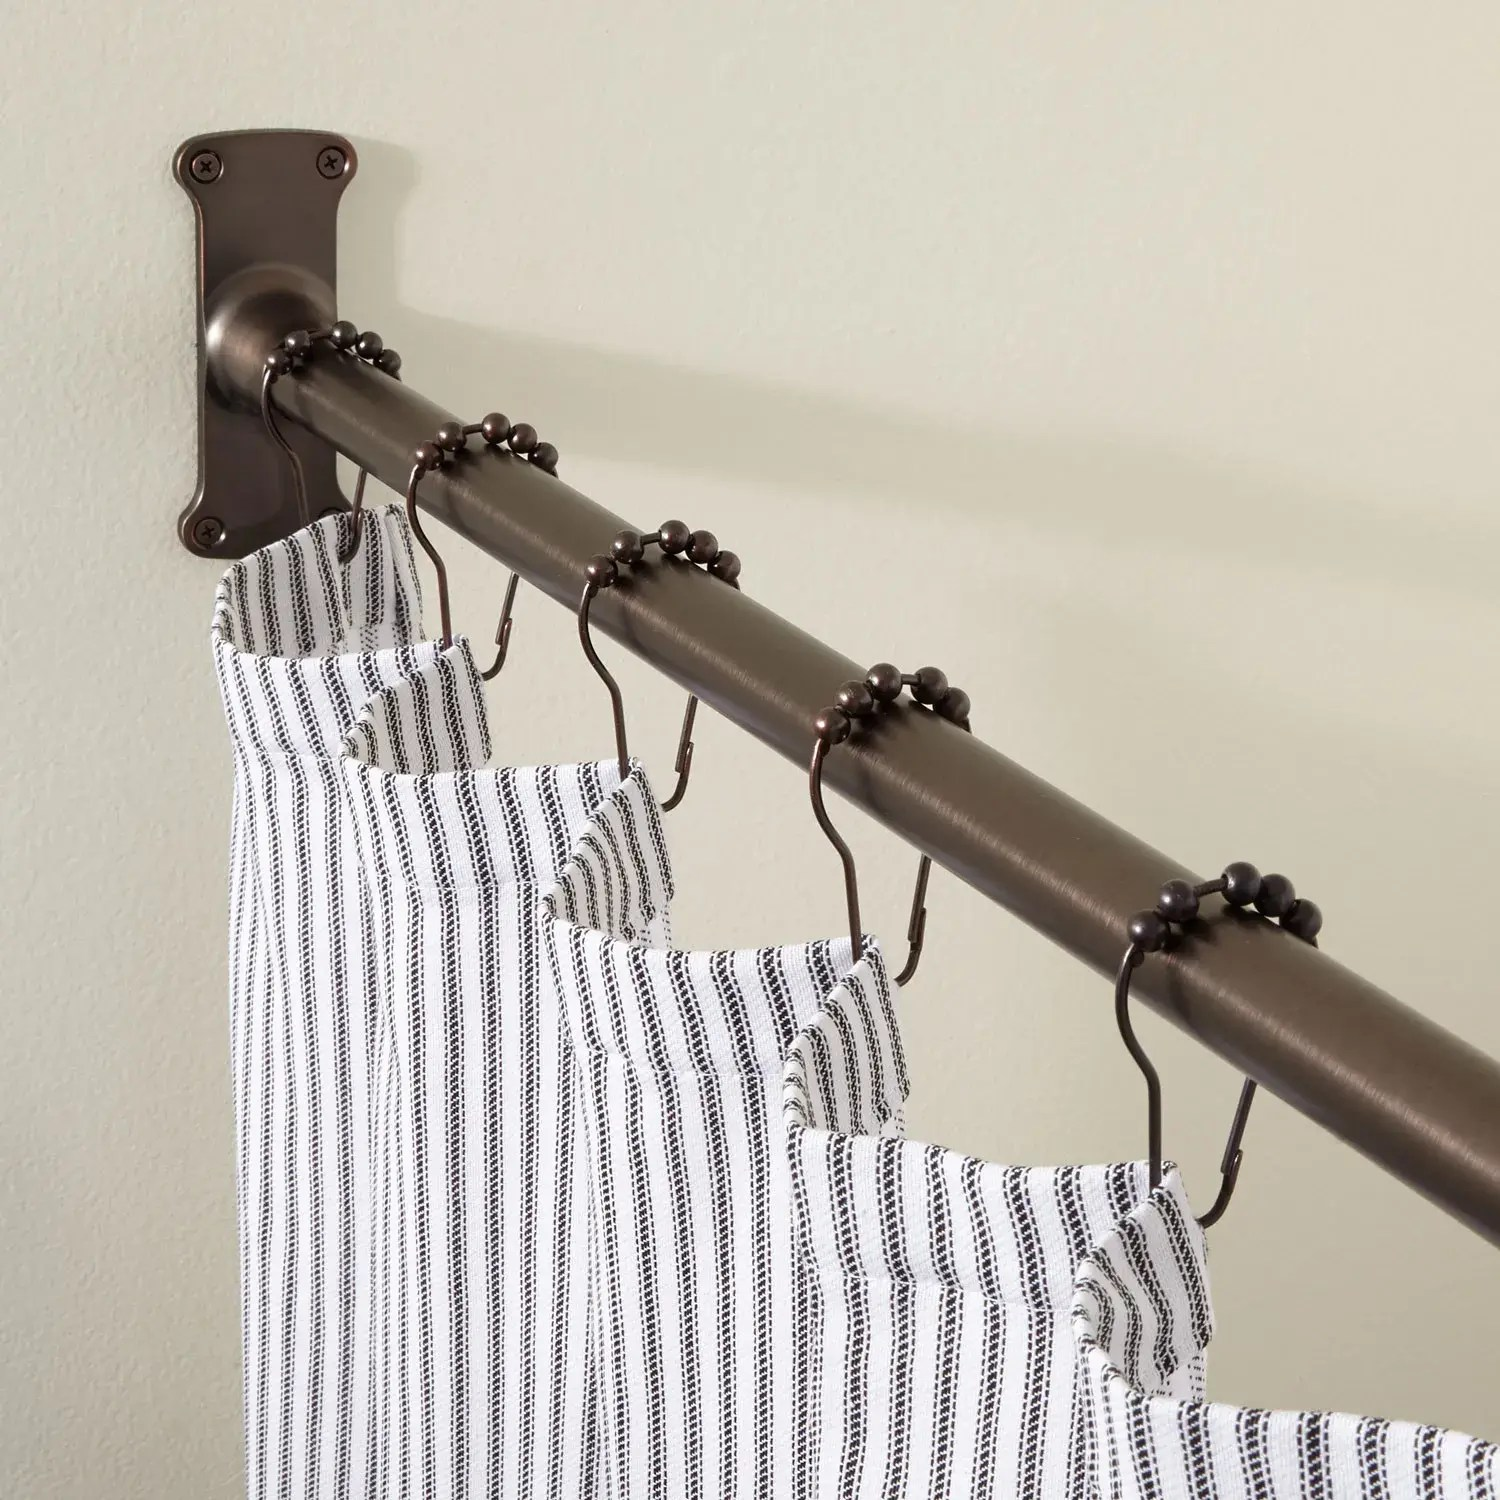 straight solid brass commercial grade shower curtain rod